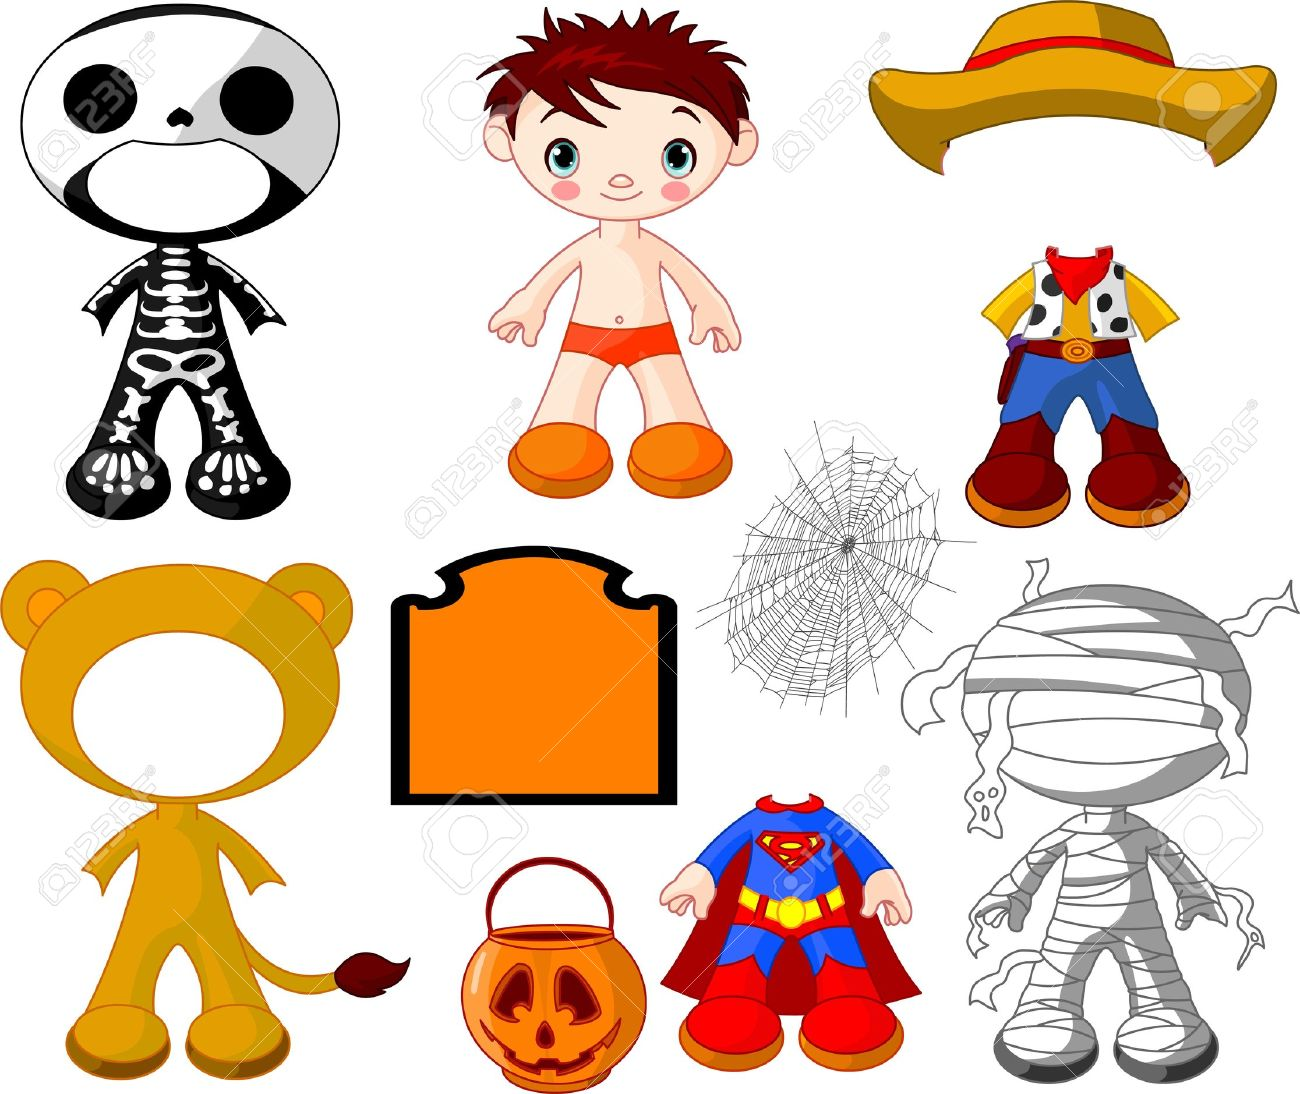 Paper Doll Boy With Costumes For Halloween Party Royalty Free ...